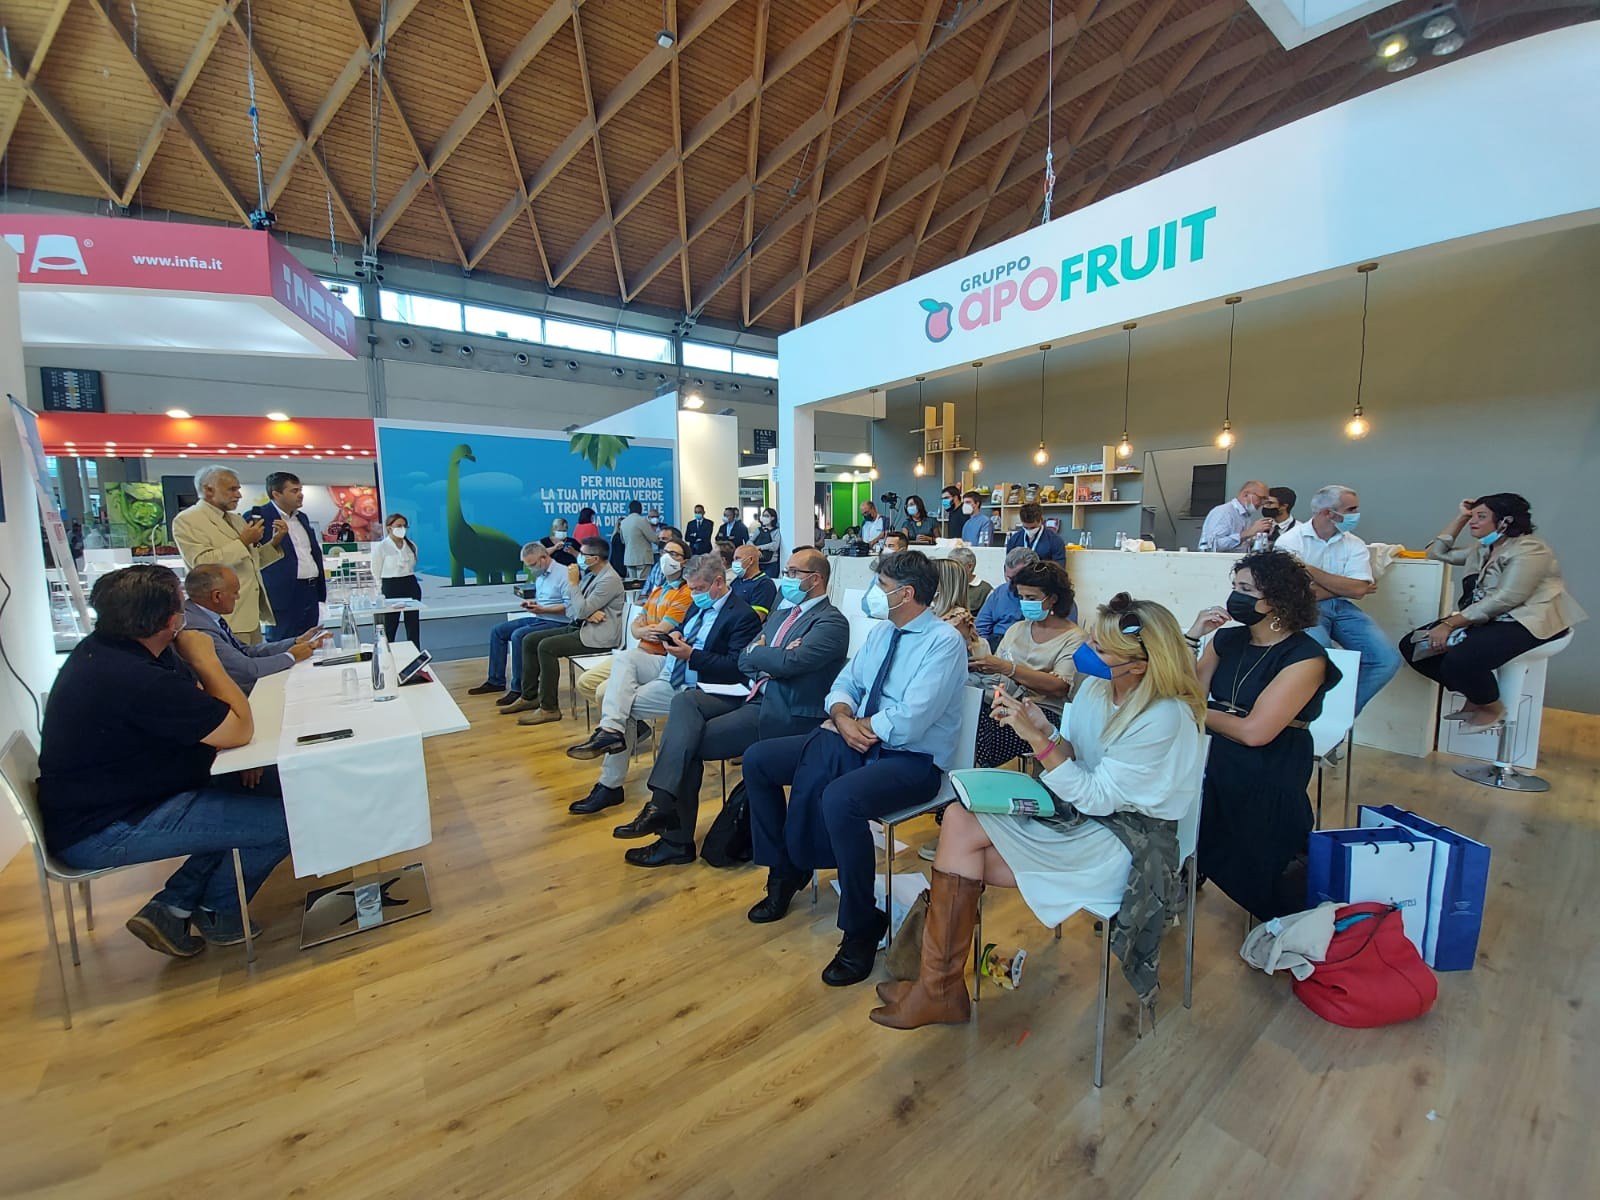 The GECO2 project presented at Apofruit's stand in Macfrut